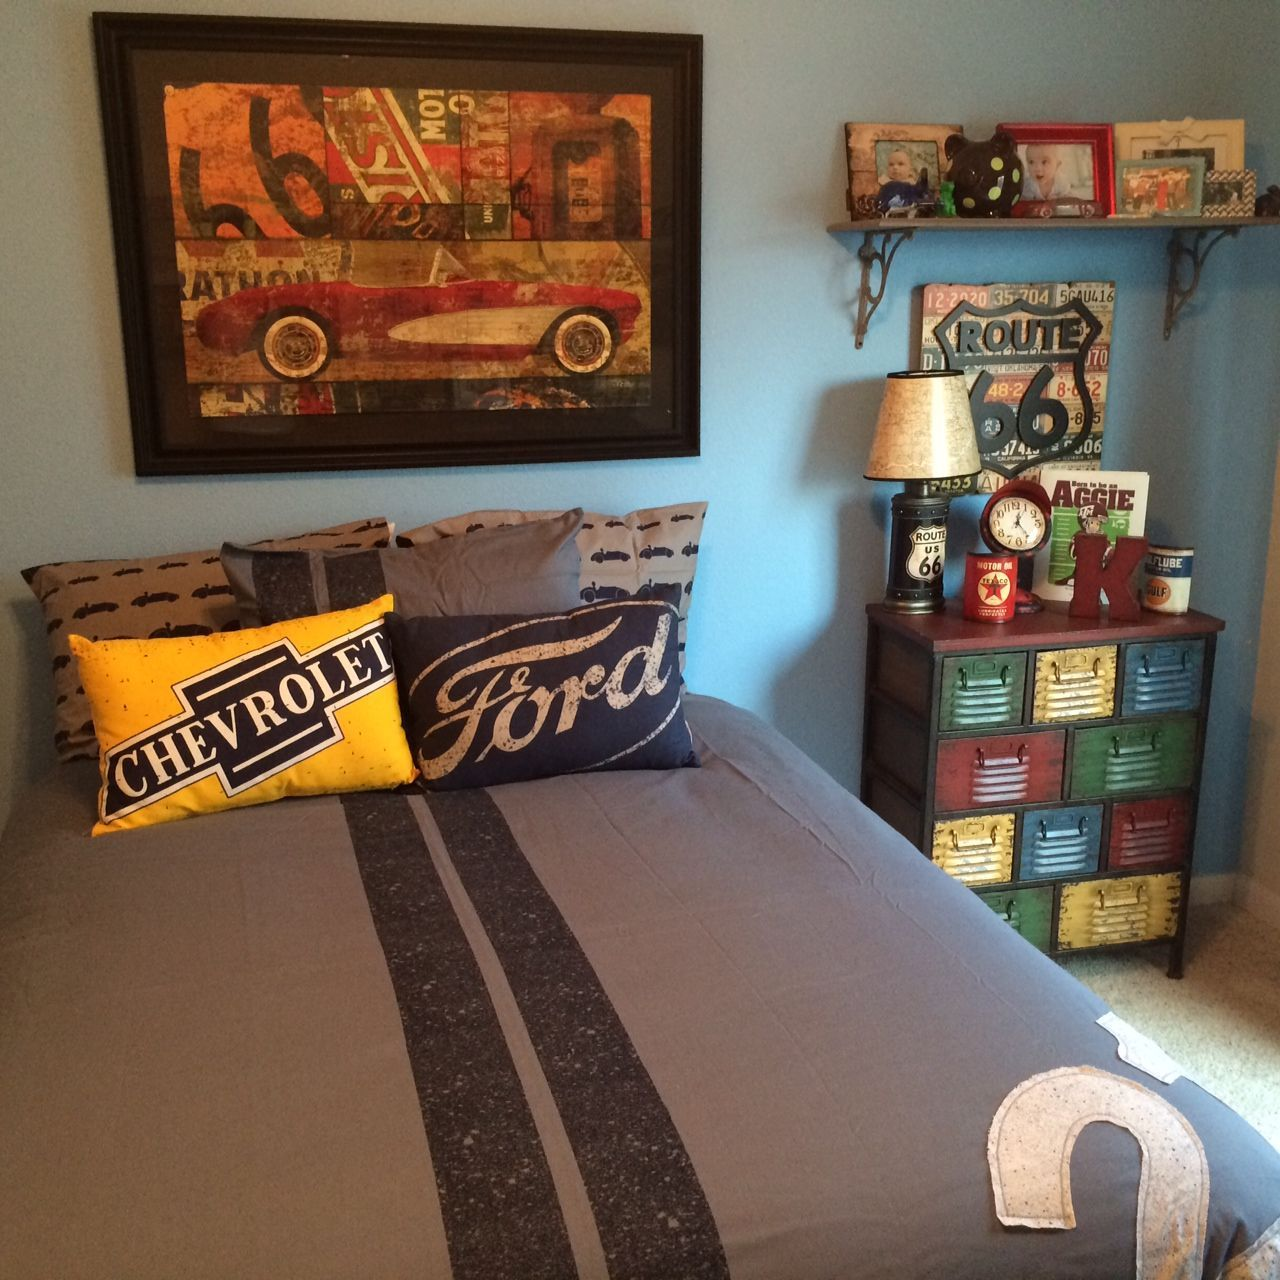 Retro Racing Cars#restorationhardwarebaby.com#HobbyLobby